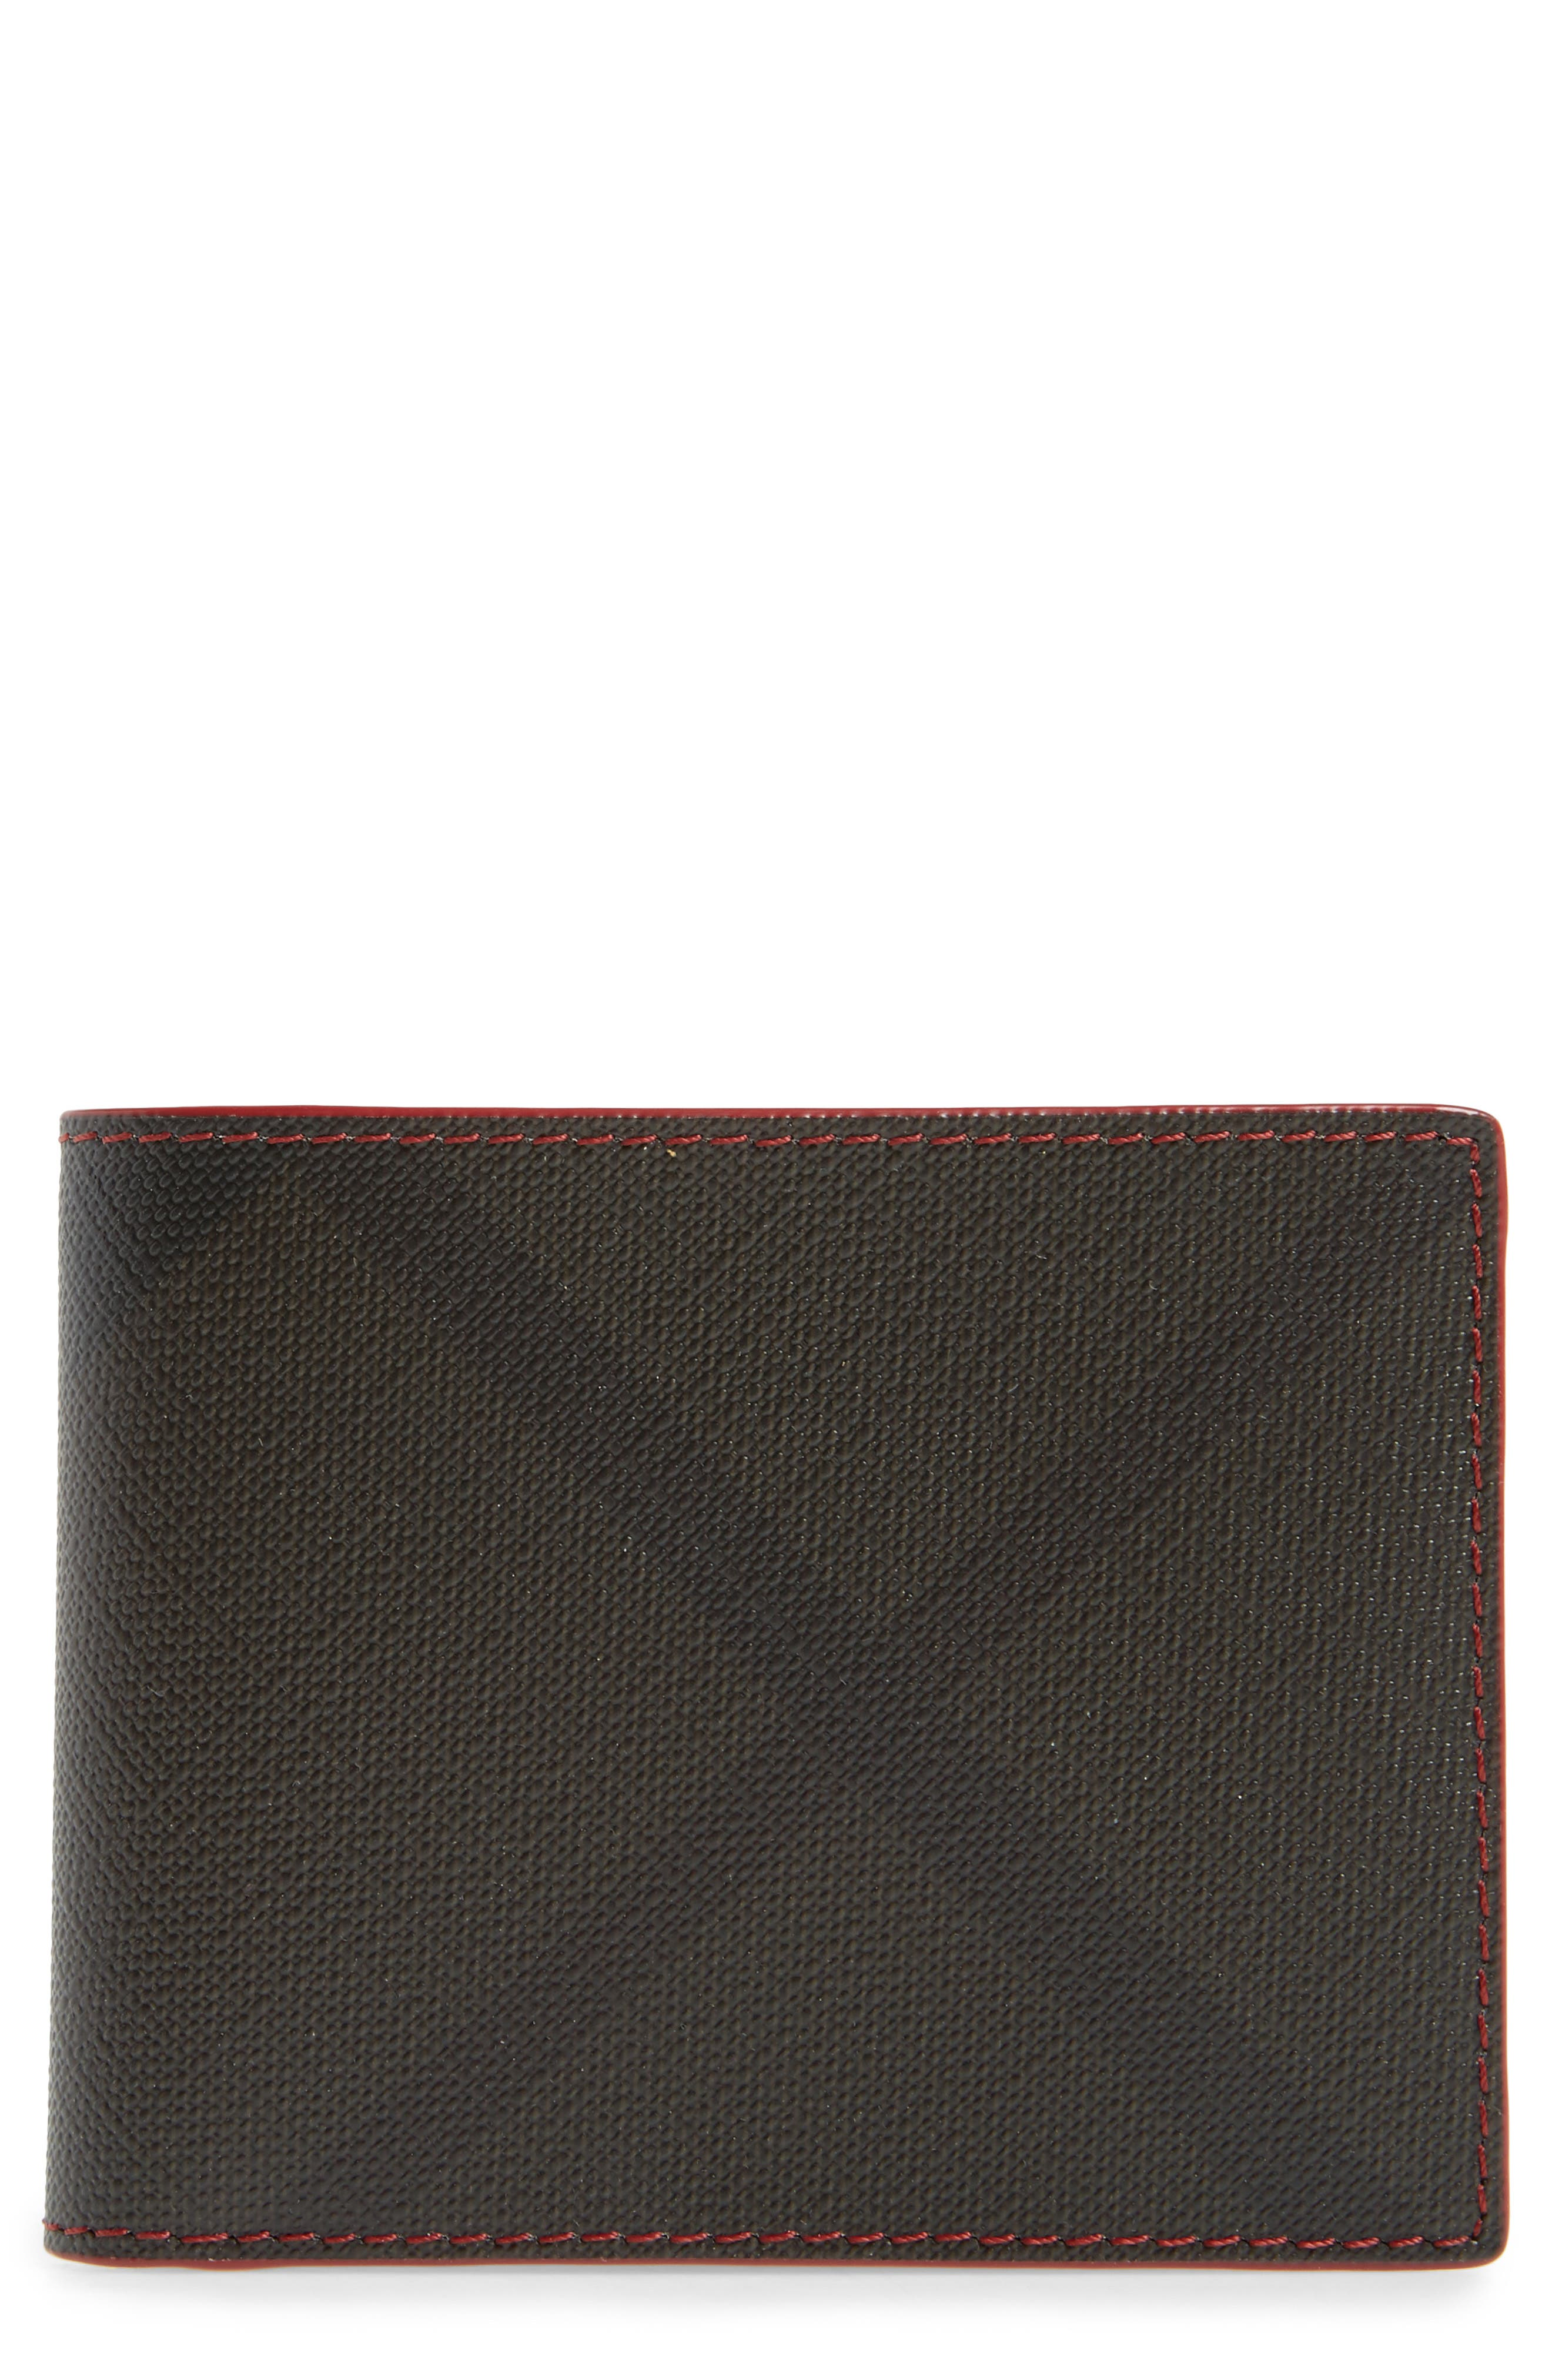 Main Image - Burberry Check Faux Leather Wallet